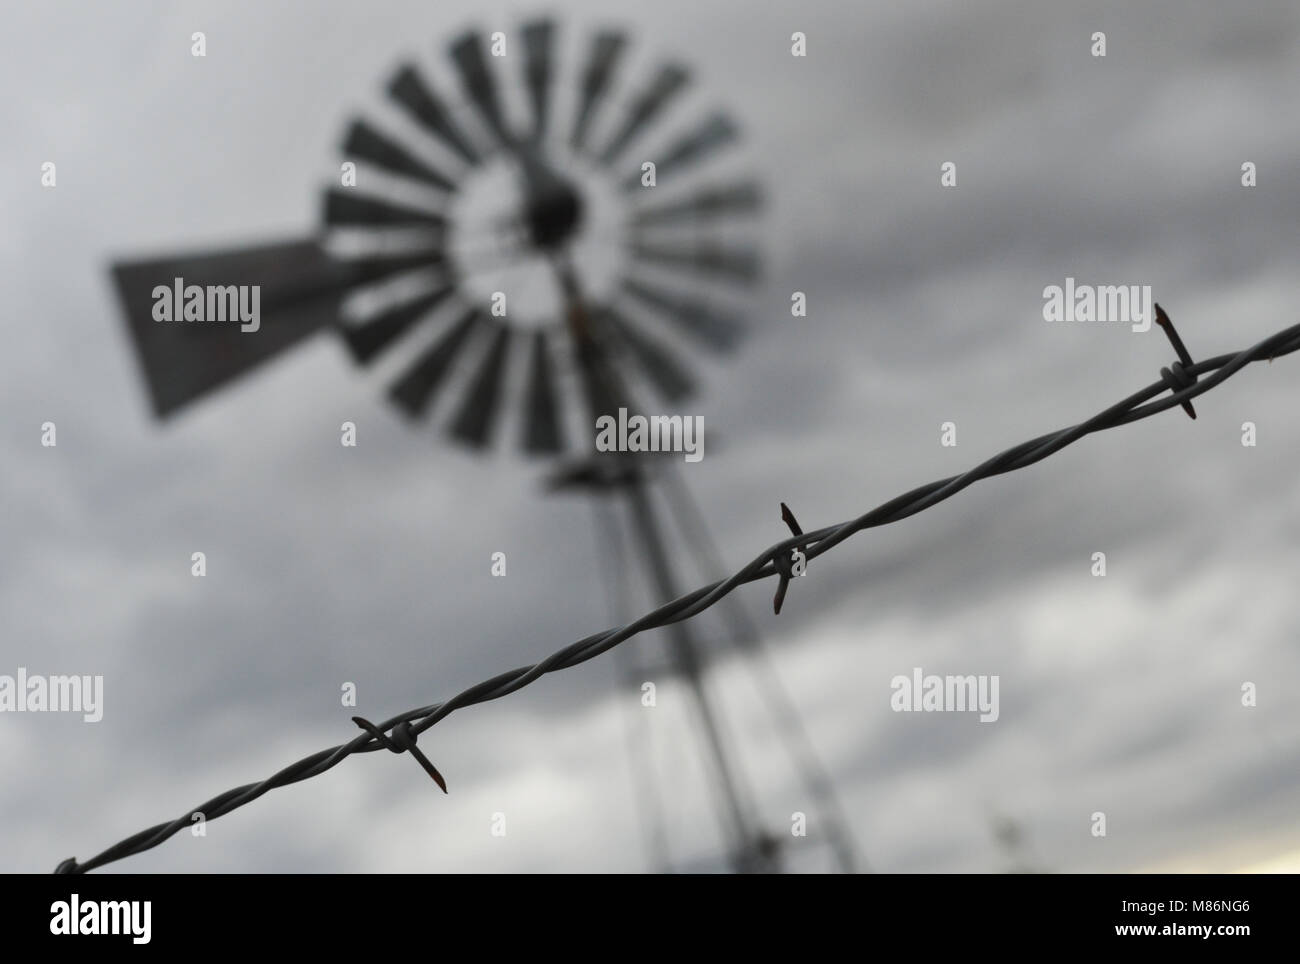 An old-fashioned windmill stands behind a barbed wire fence along a ...